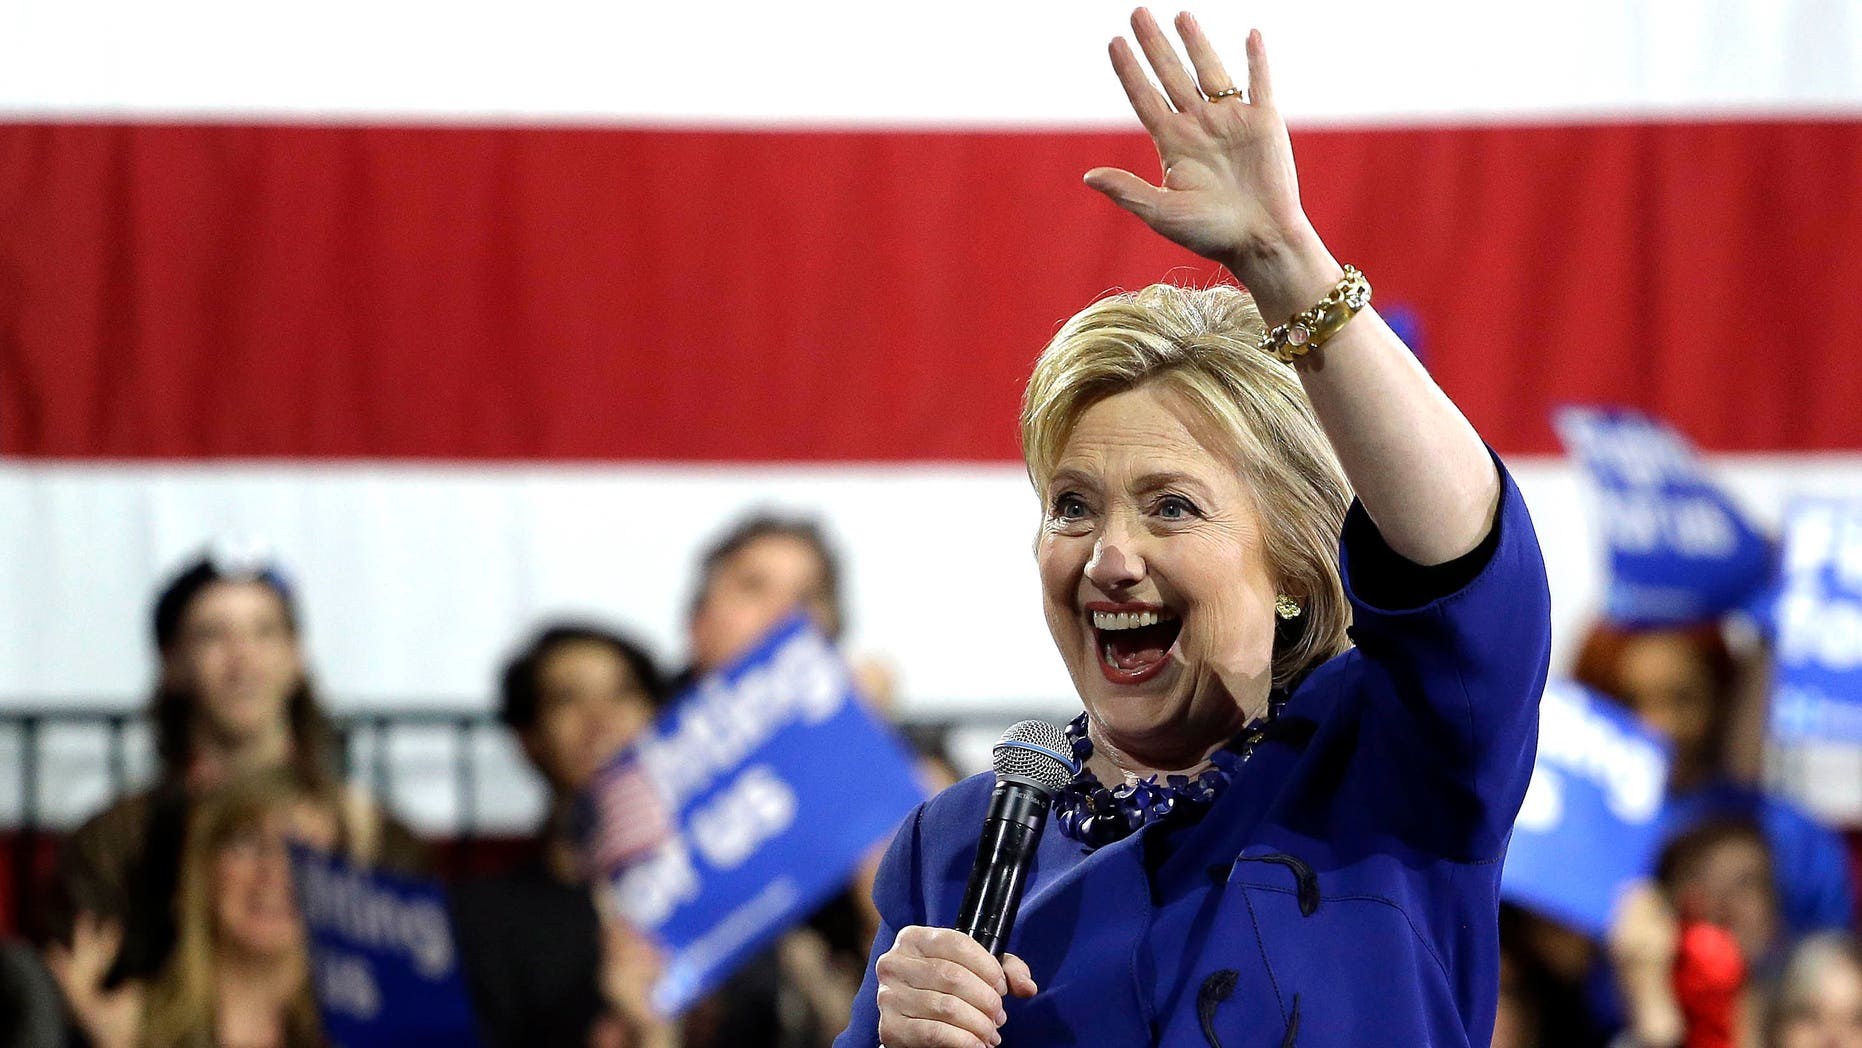 Presidential candidate Hillary Clinton at a campaign rally, Wednesday, March 2, 2016, in New York.